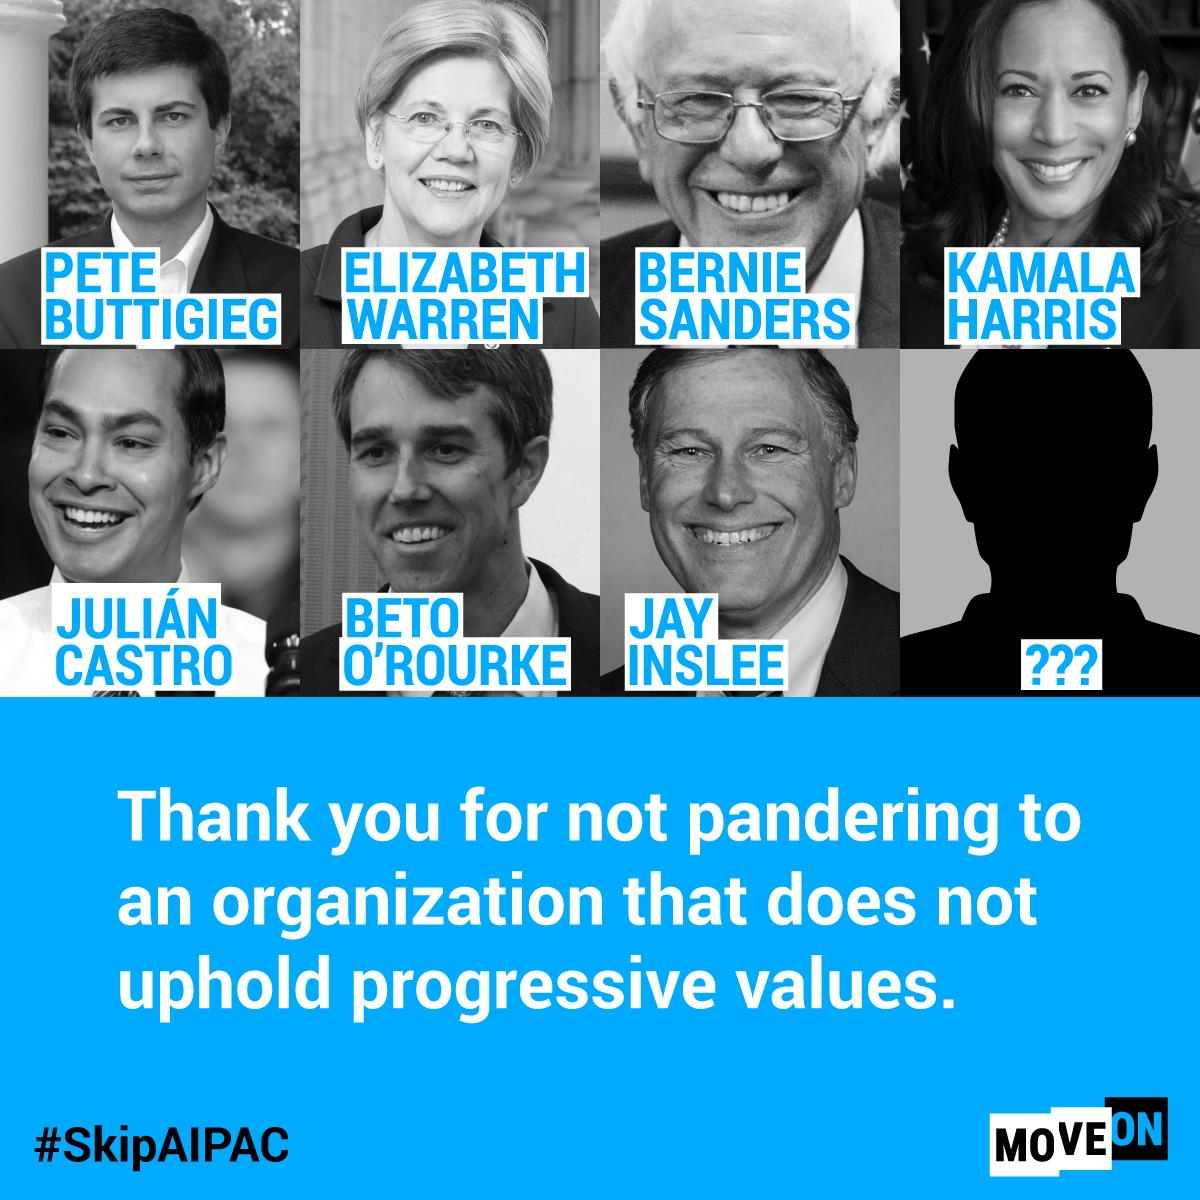 & the list of 2020 presidential candidates who have made the decision to #SkipAIPAC continues to grow. Thank you for your leadership here @PeteButtigieg, @ewarren, @BernieSanders, @KamalaHarris, @JulianCastro, @BetoORourke, @JayInslee... who is next?